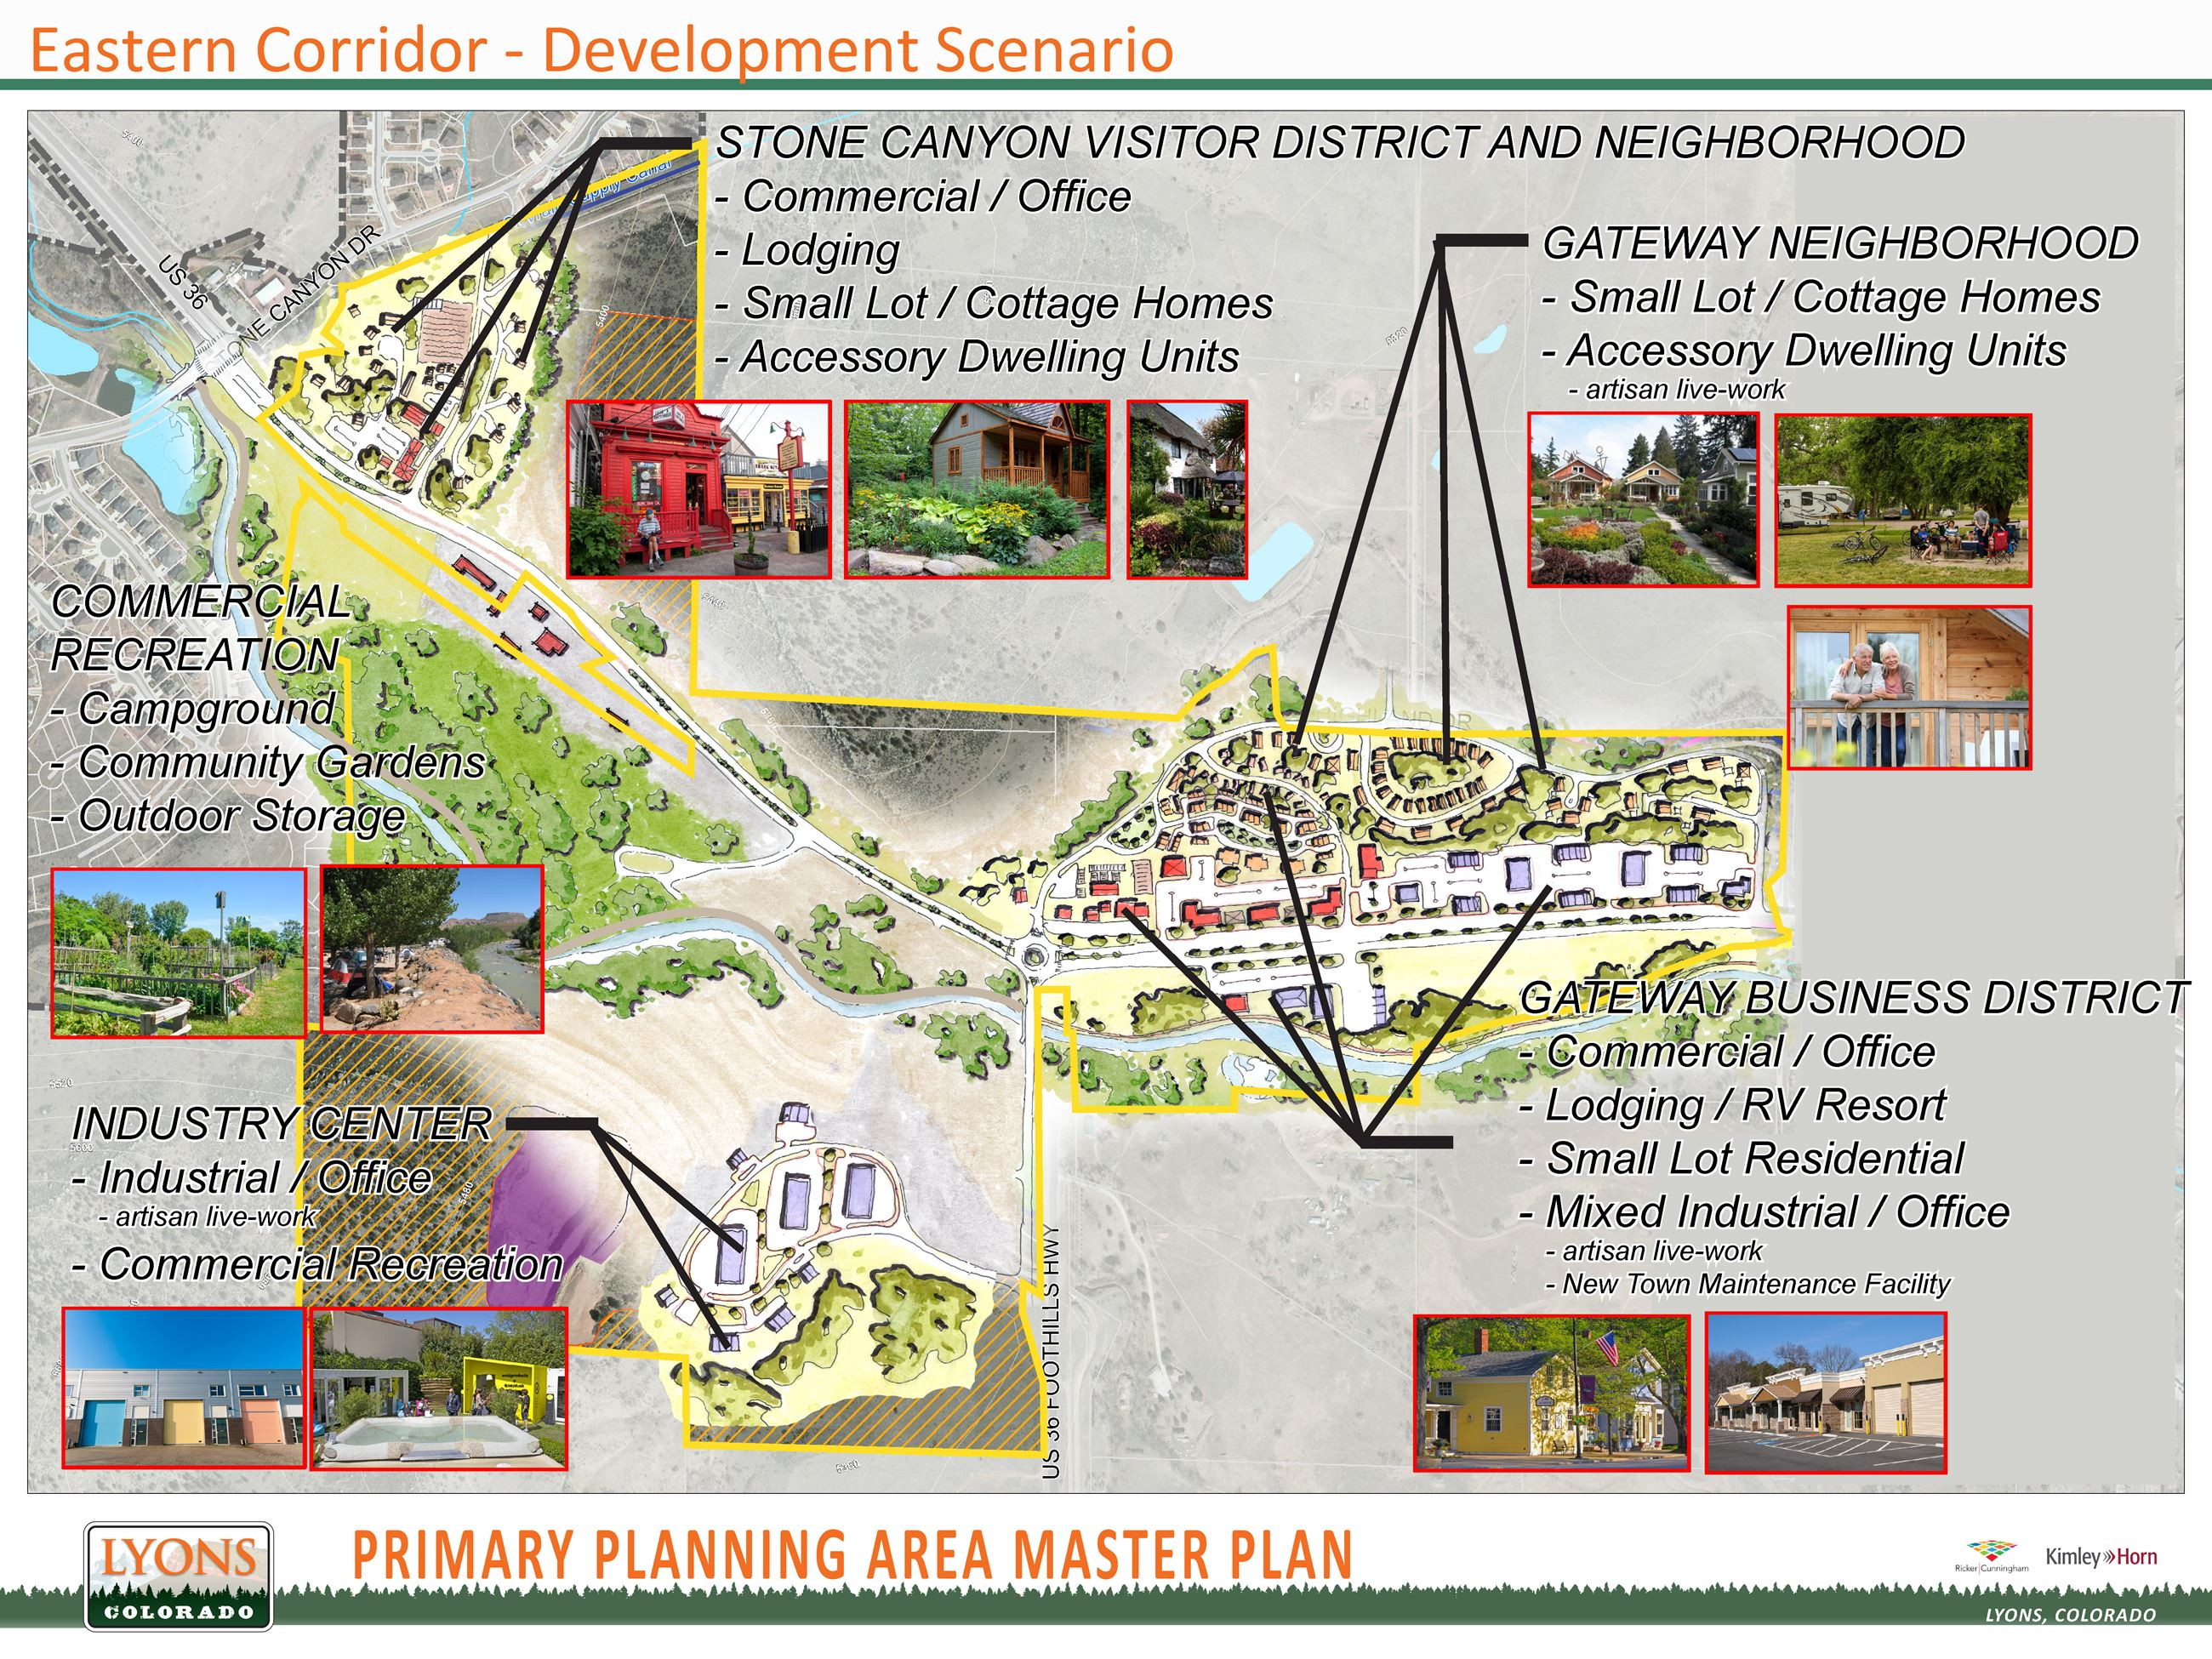 EC_Development Scenario Description